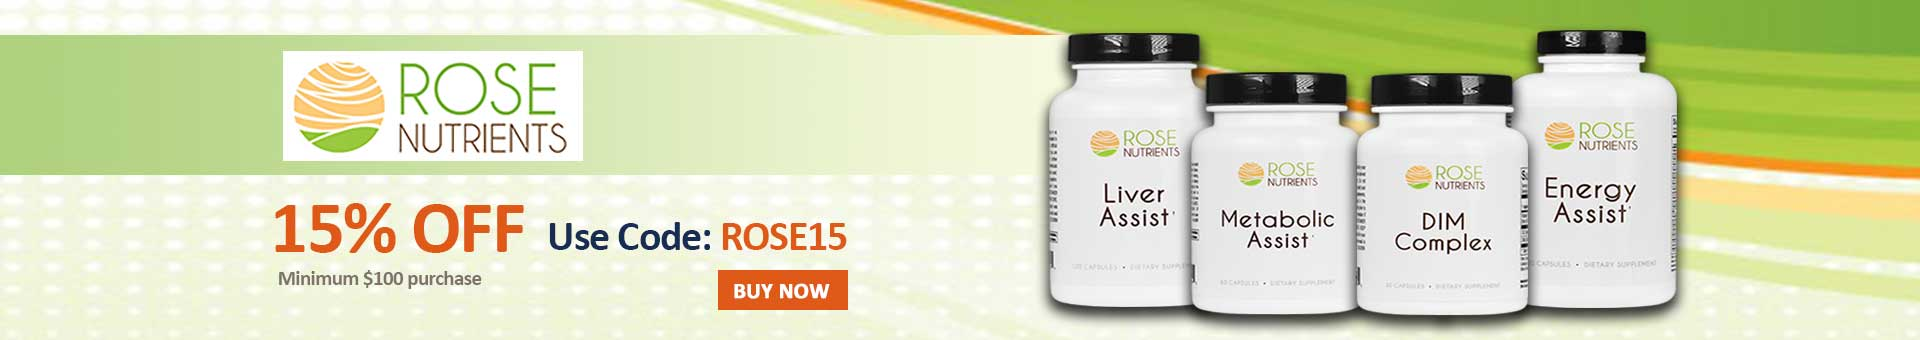 Rose Nutrients Supplements